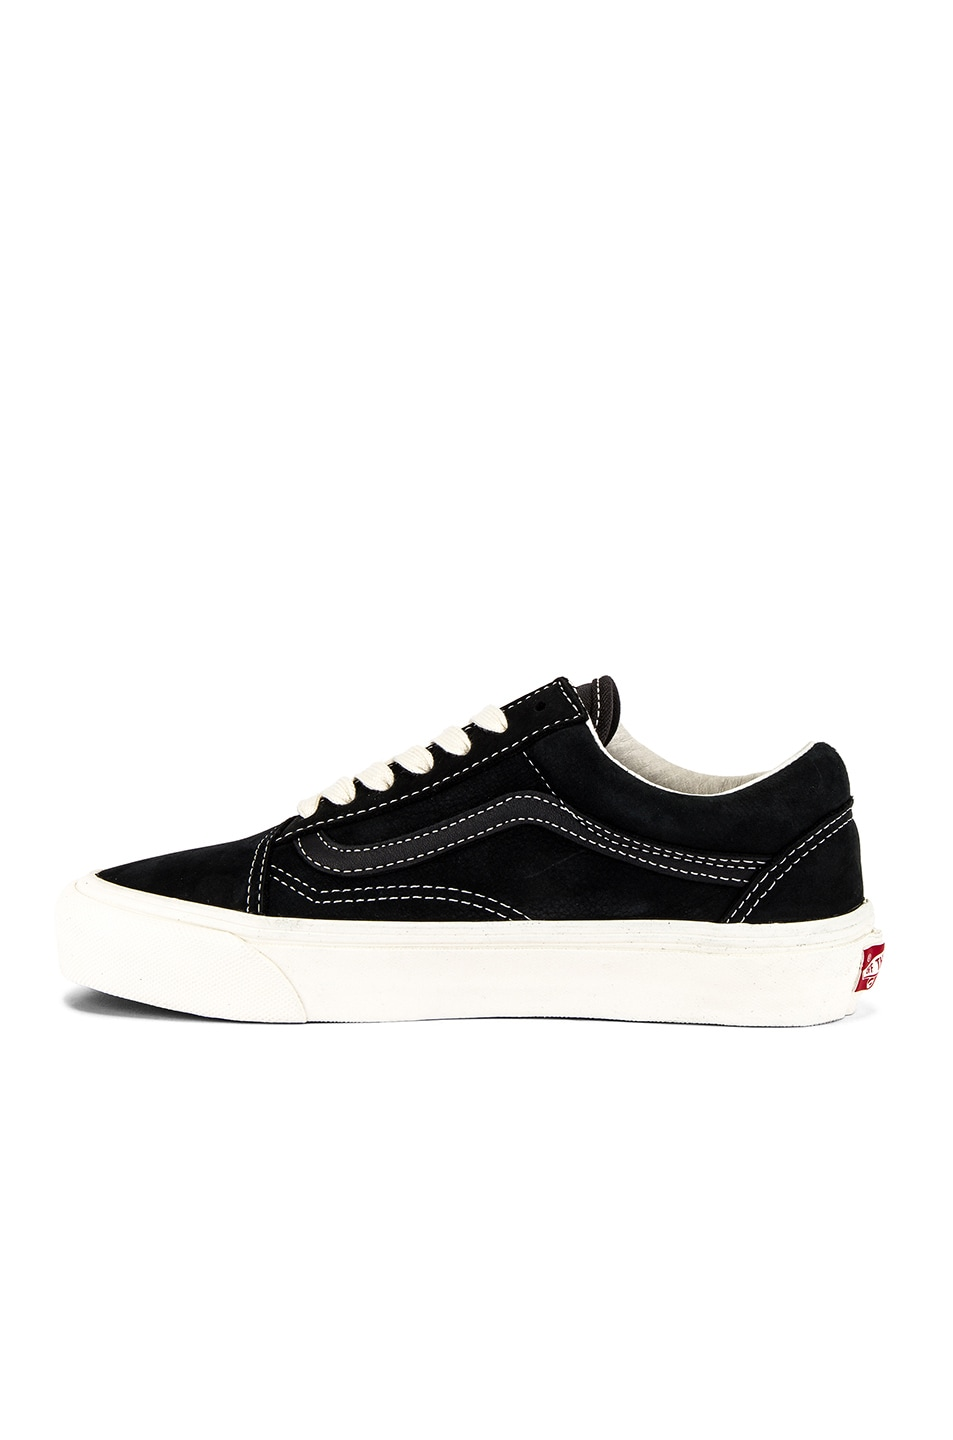 Image 5 of Vans Vault OG Old Skool LX in Raven & Black